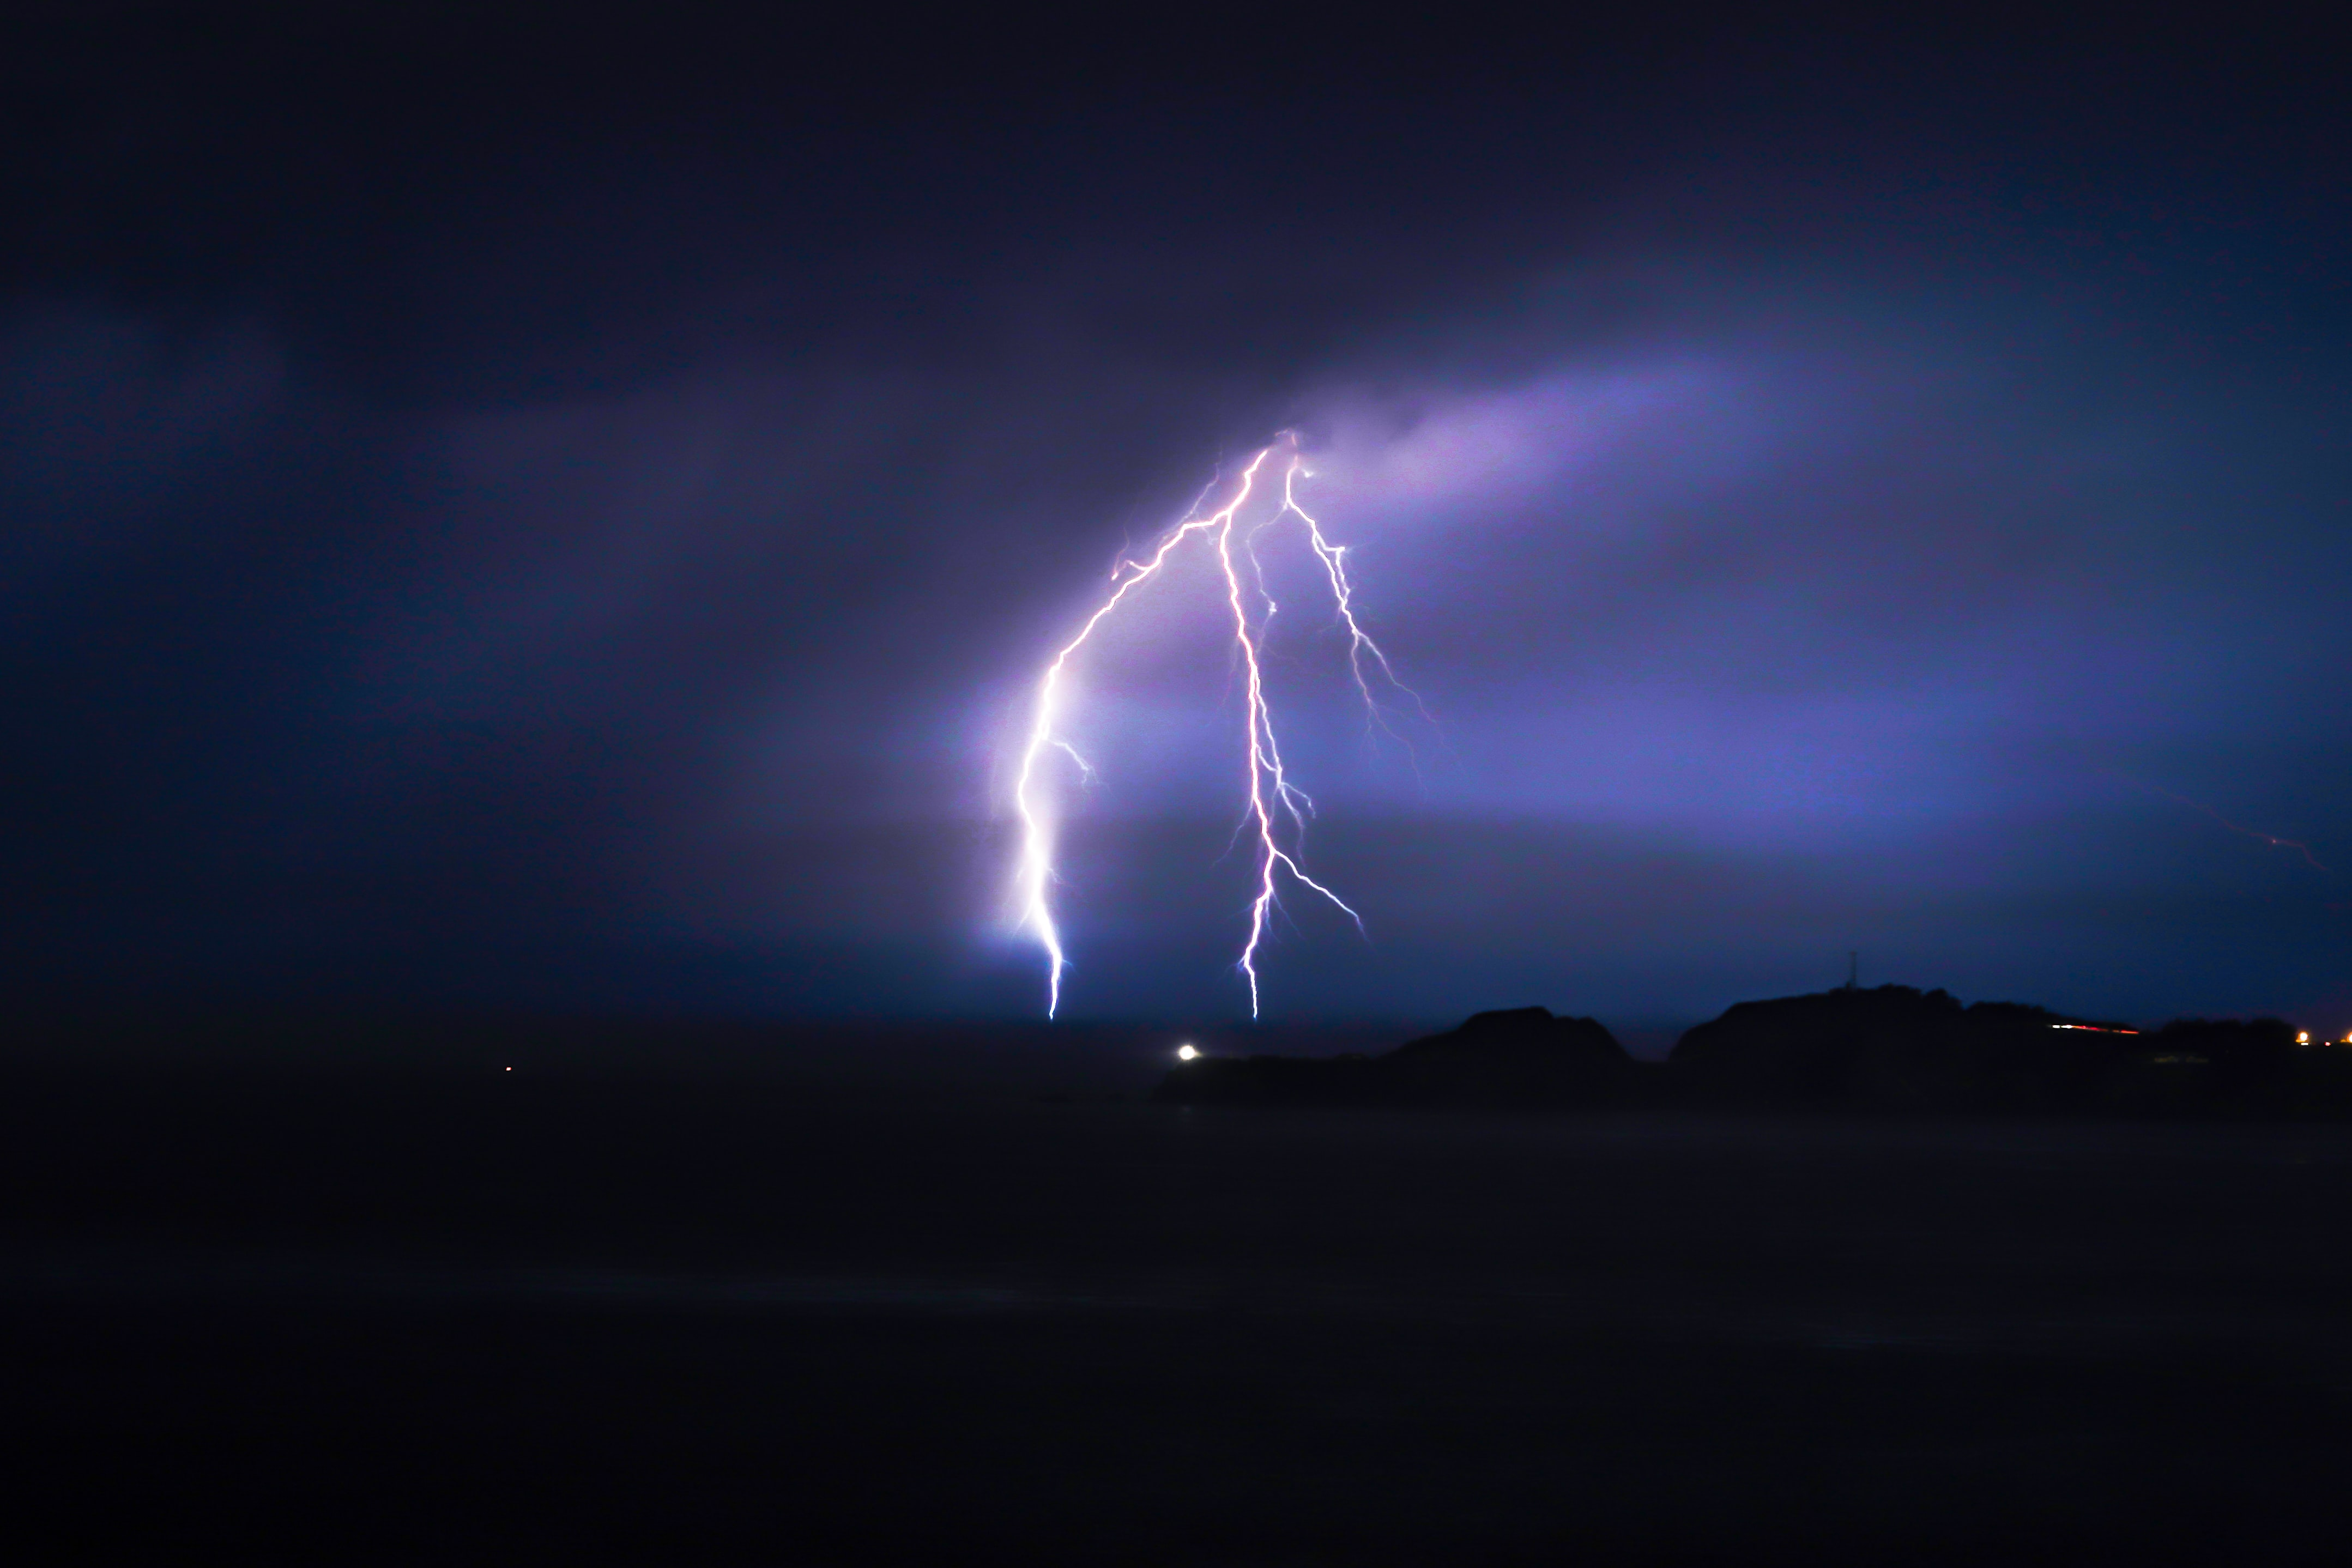 lightning at cloudy sky during night time